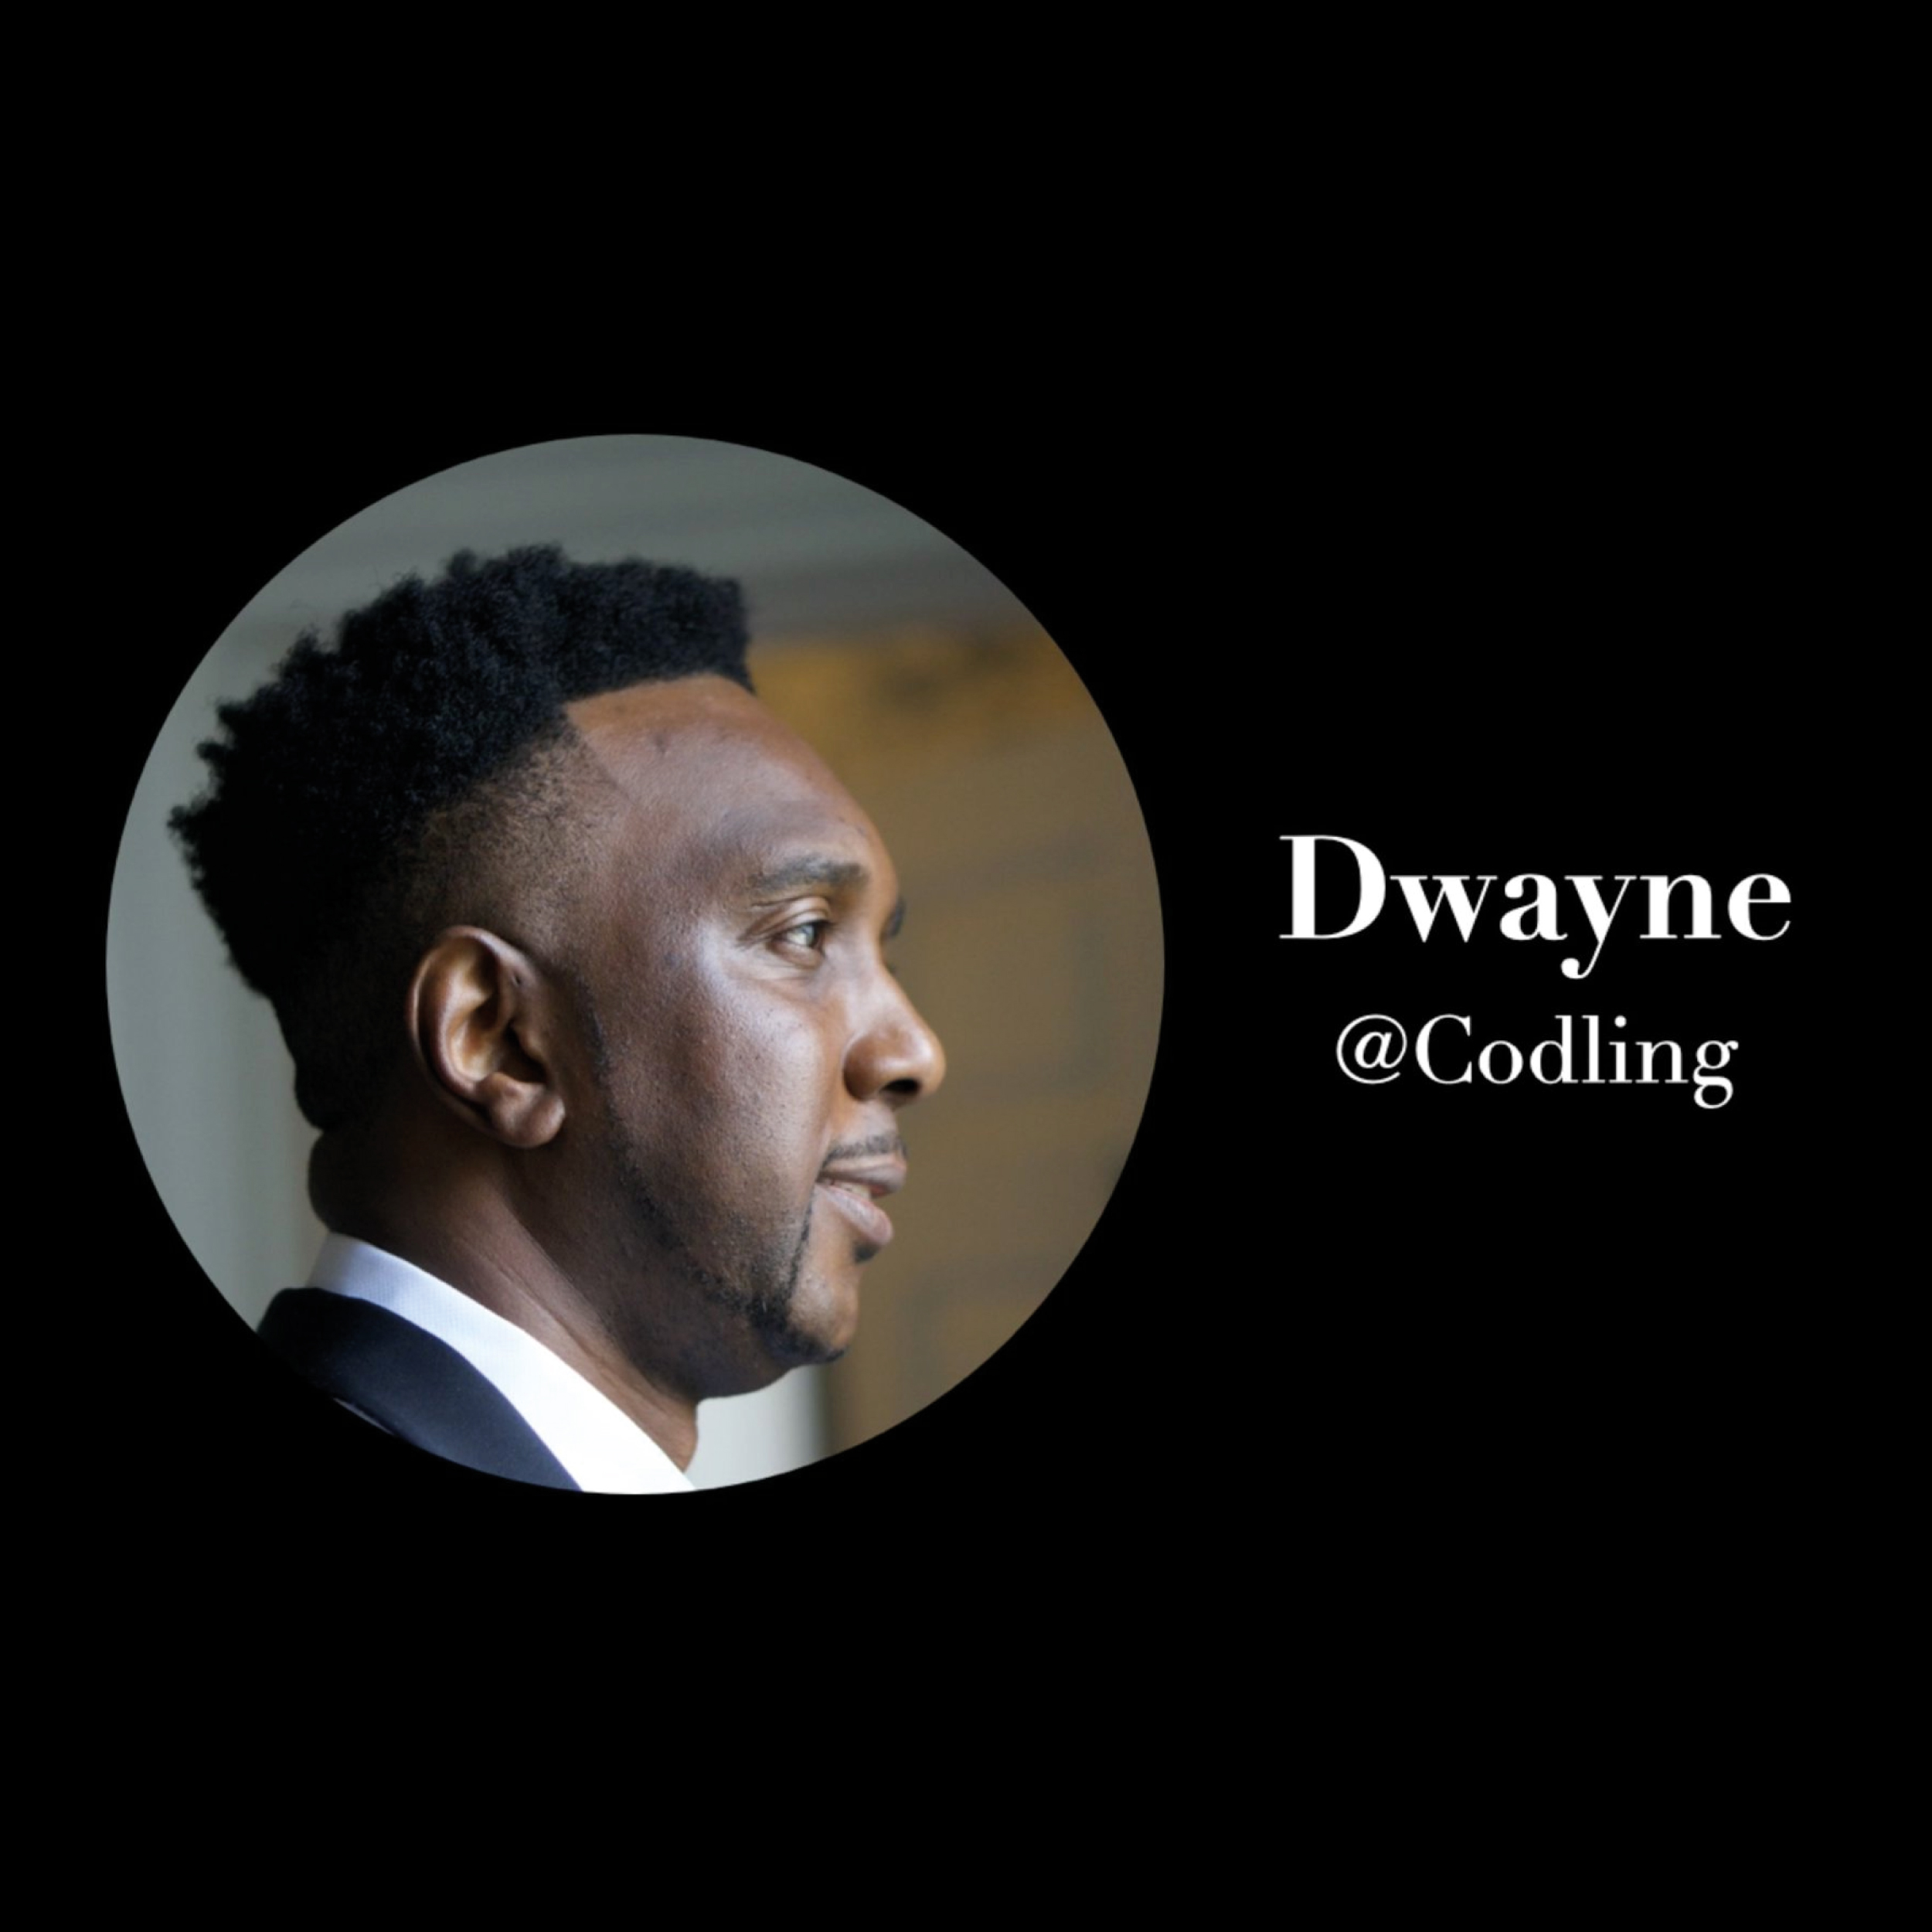 Dwayne channel image